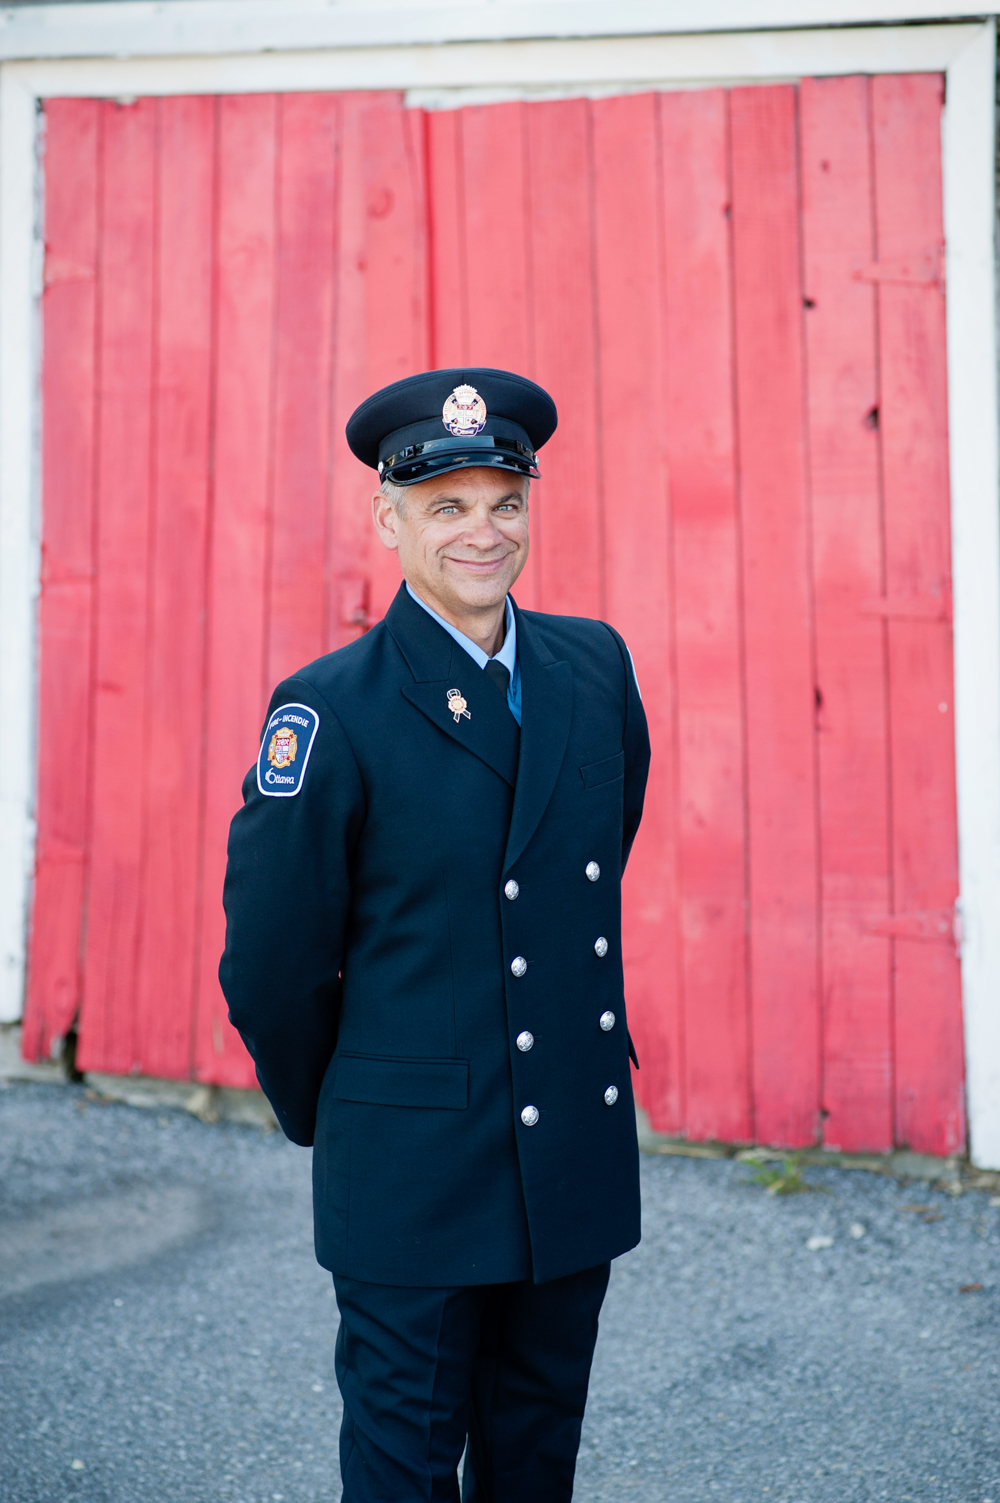 black-lamb-photography-ottawa-wedding-photographer-fire-fighter-themed-wedding-shoot-22